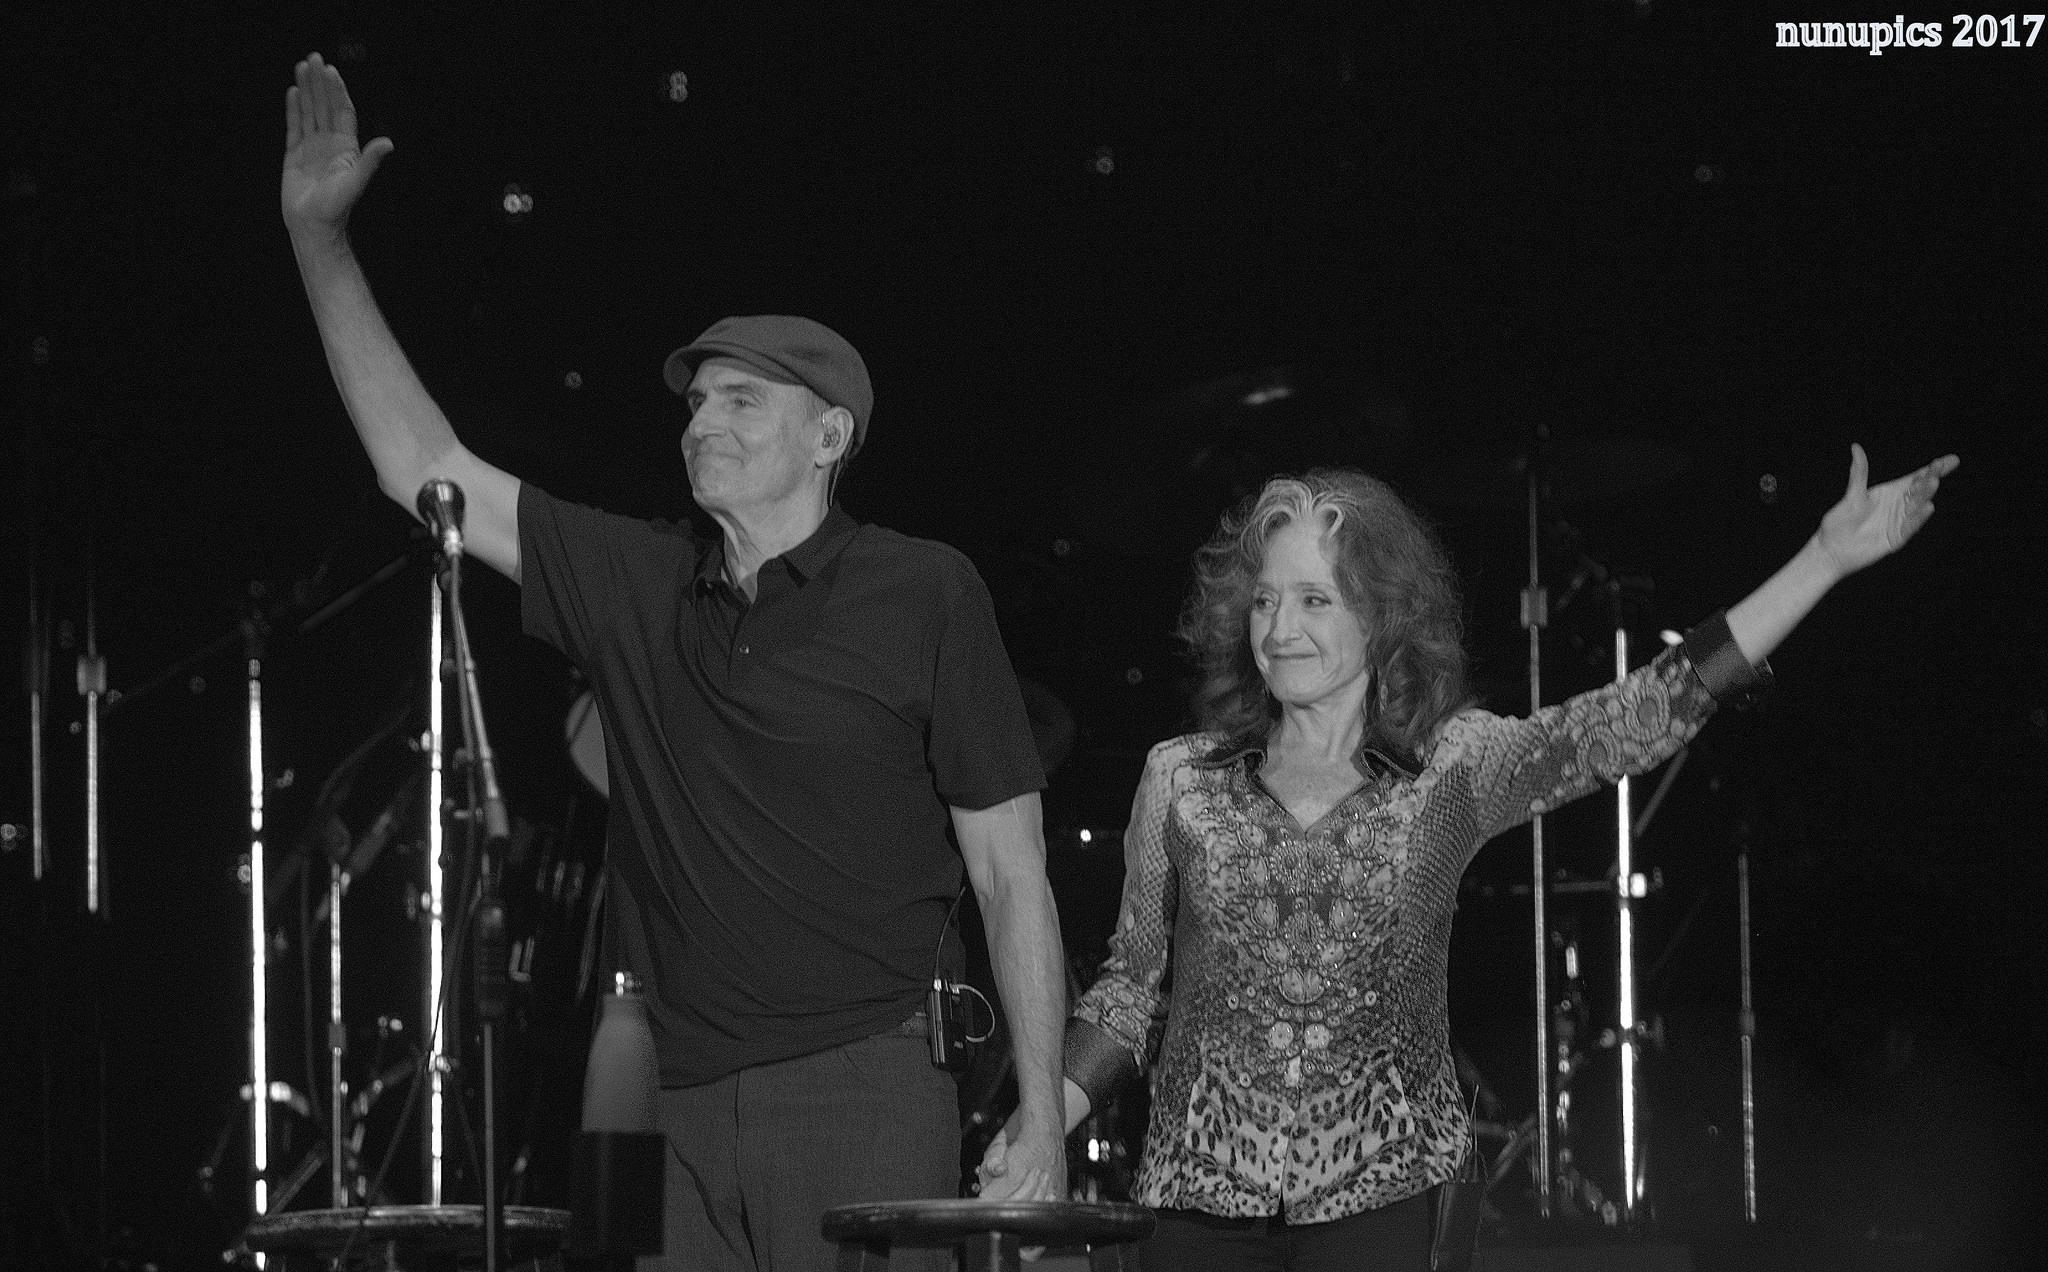 James Taylor & Bonnie Raitt Join Forces At The Ballpark